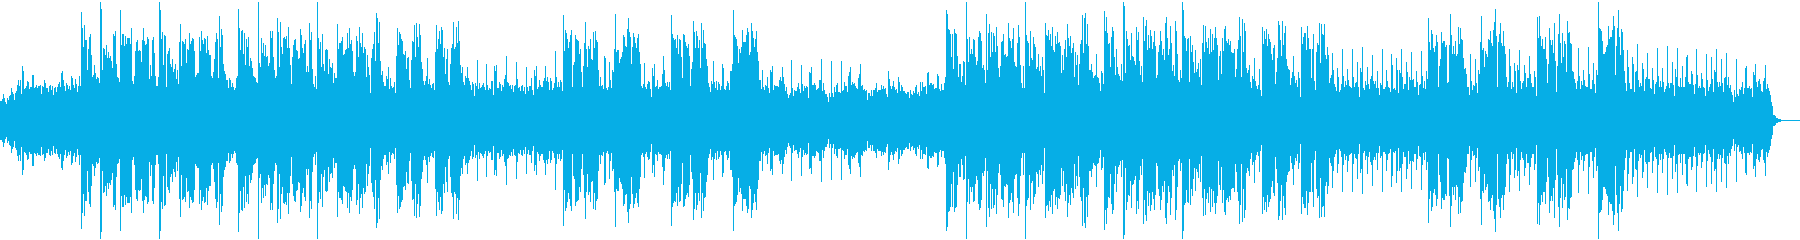 Country, woman, english, slow, guitar's reproduced waveform